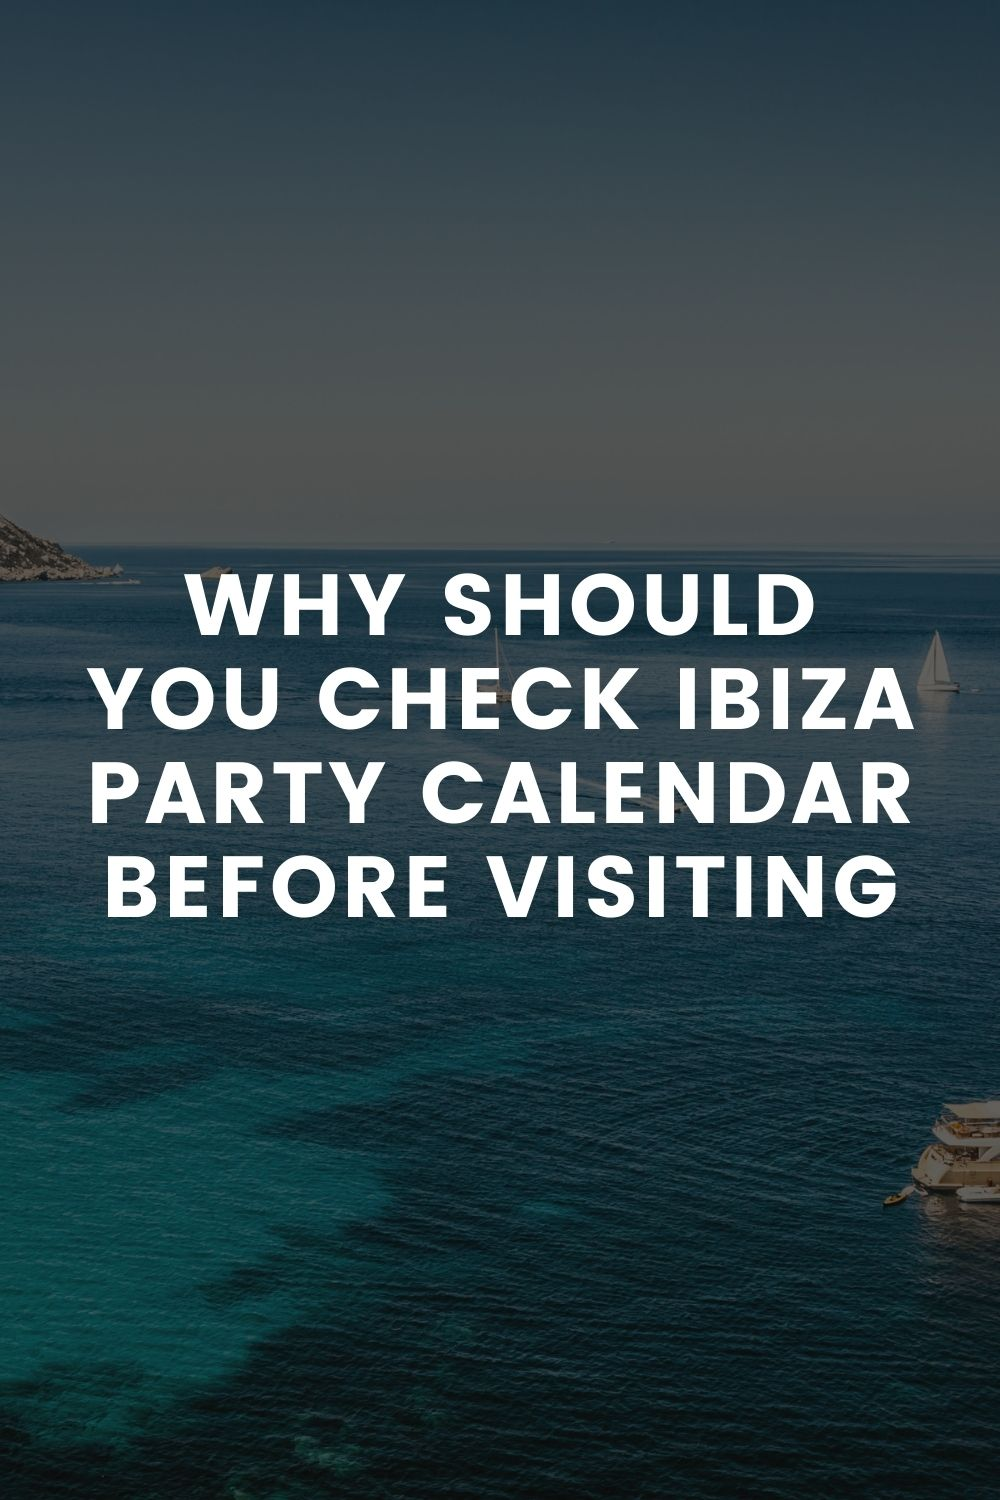 Why Should You Check Ibiza Party Calendar Before Visiting